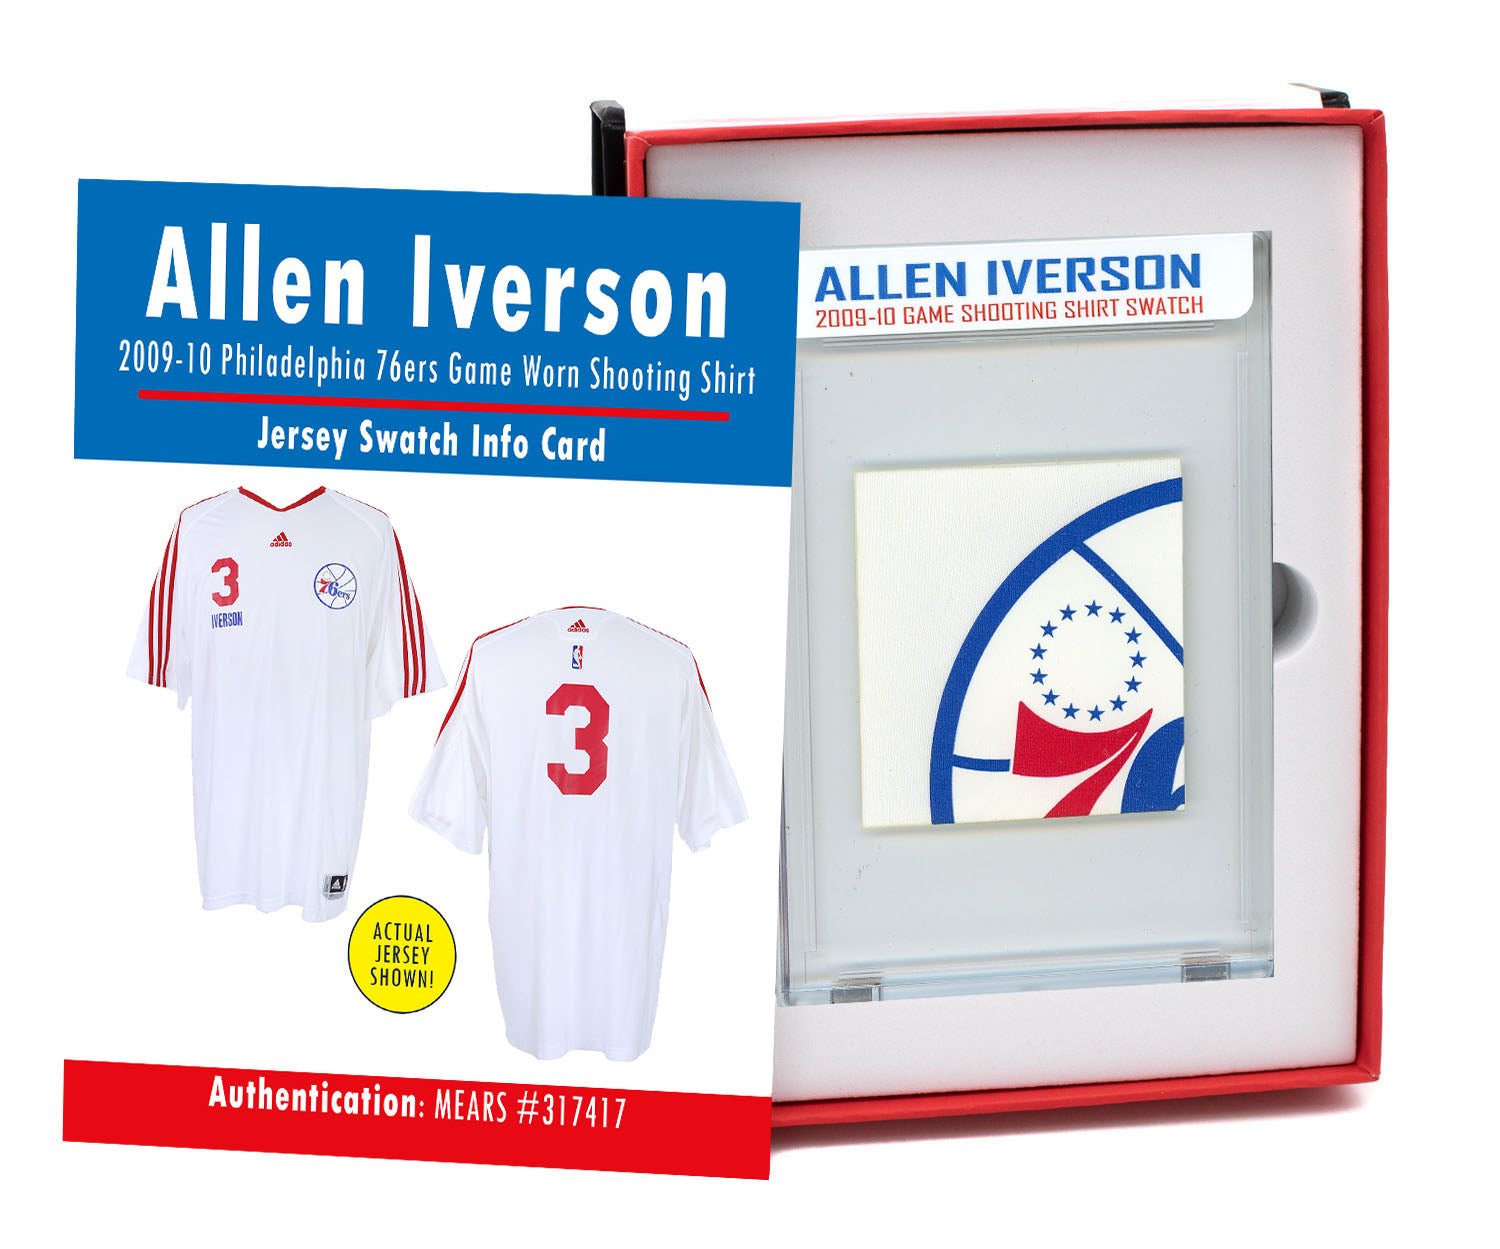 ALLEN IVERSON 2009-10 76ers GAME WORN SHOOTING SHIRT MYSTERY SEALED SWATCH BOX!